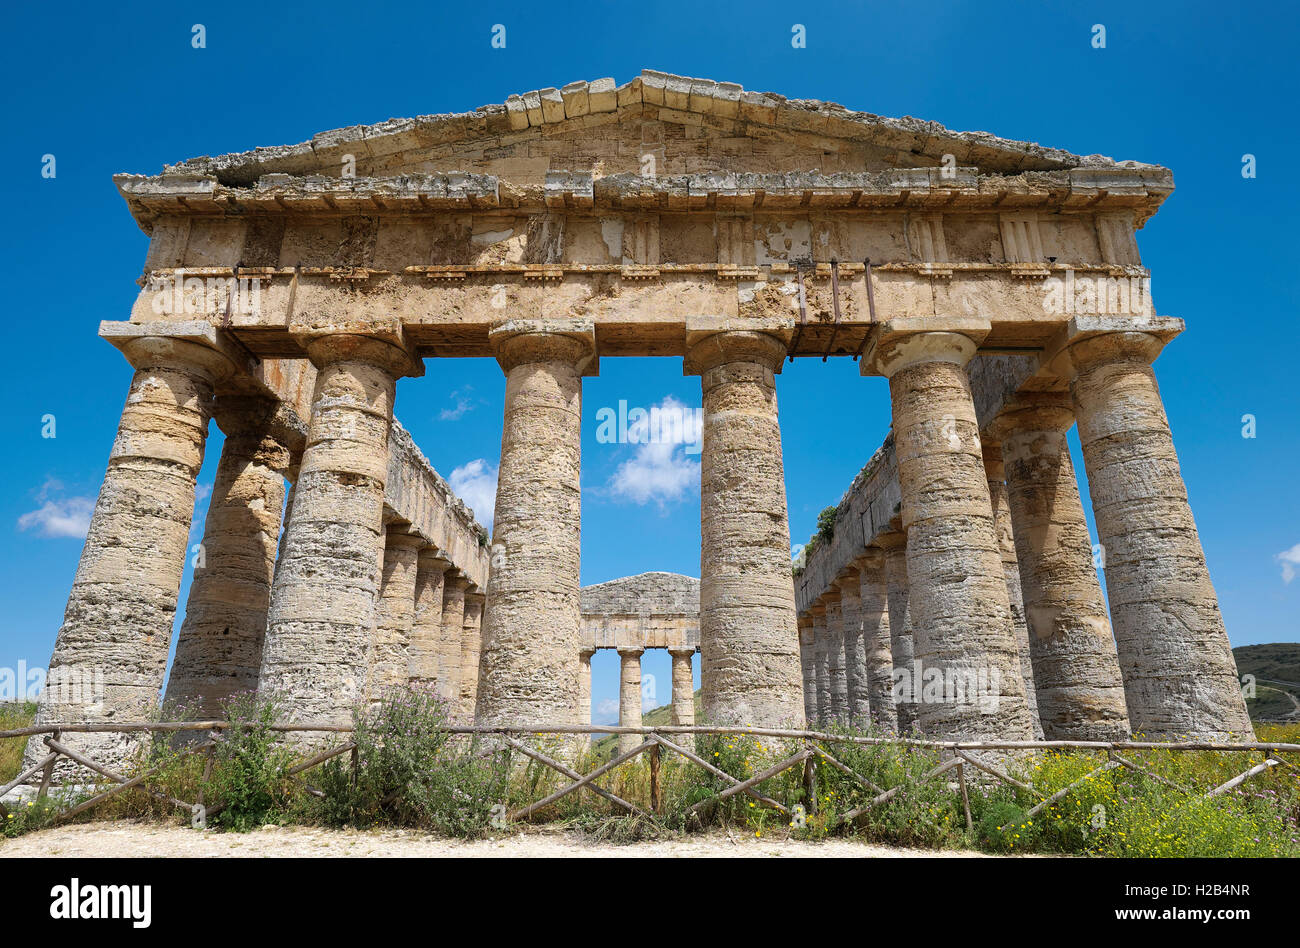 Ancient Temple of Segesta, Province of Trapani, Sicily, Italy - Stock Image